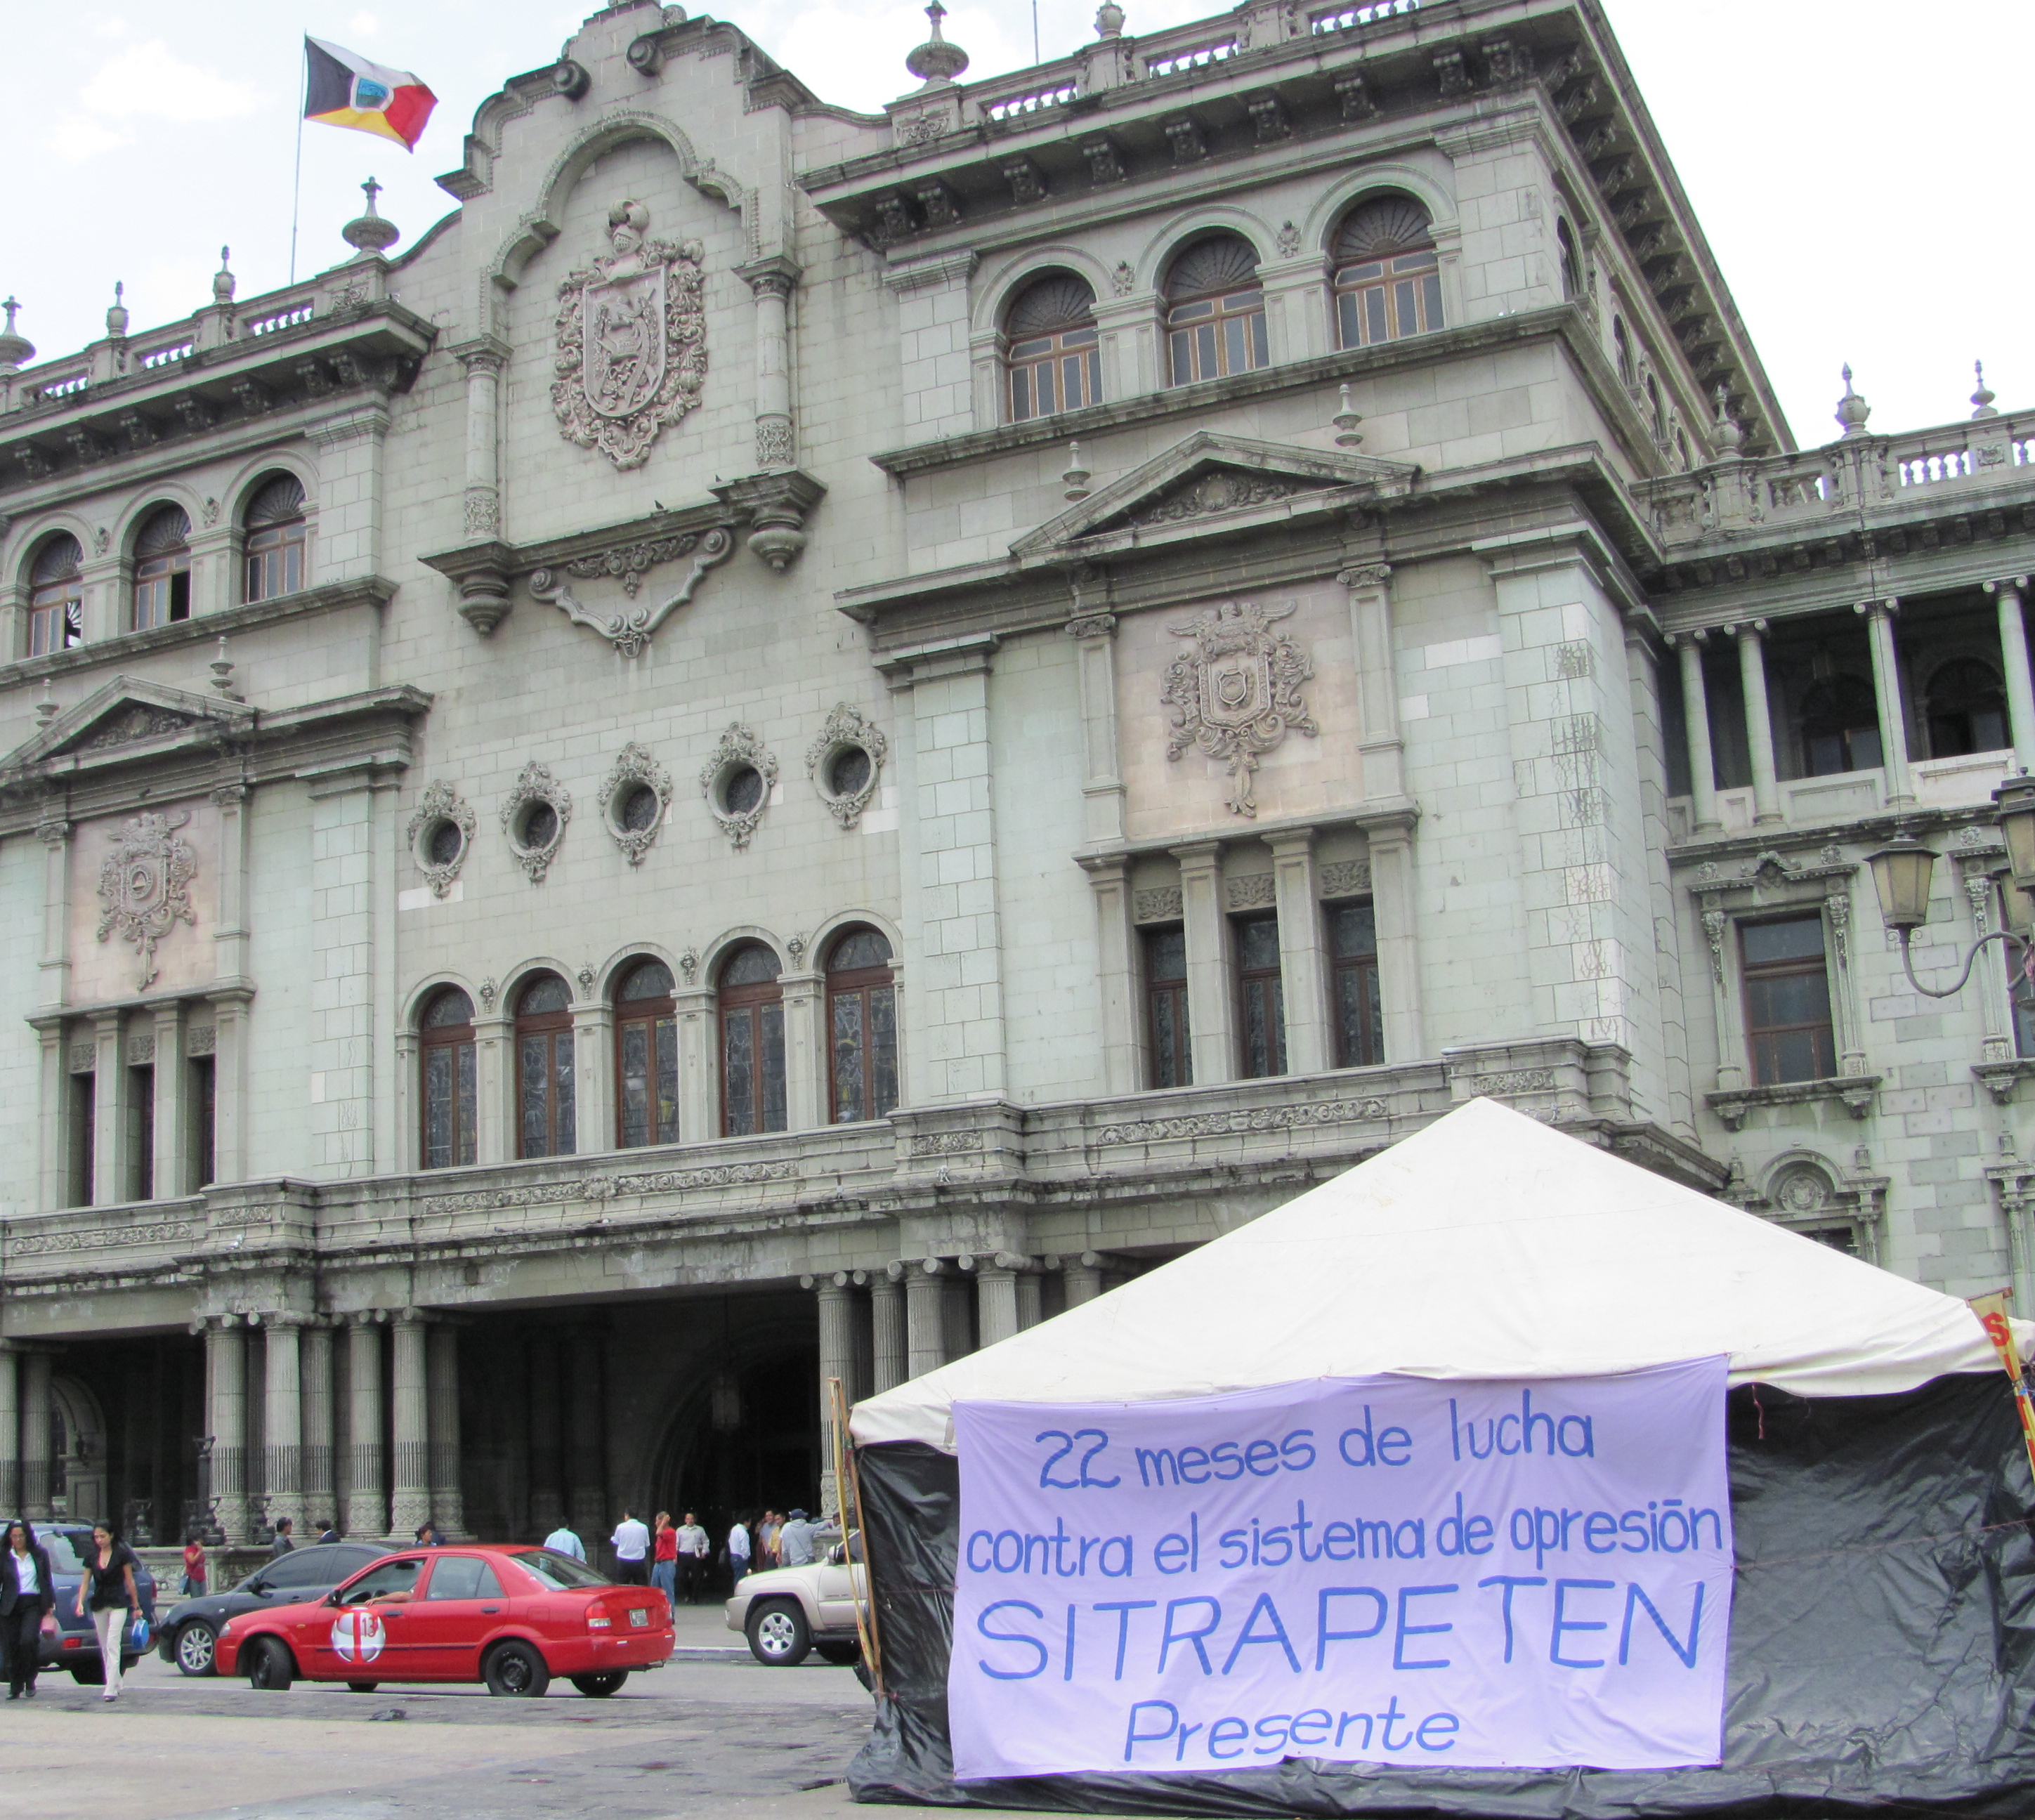 sitra-guate